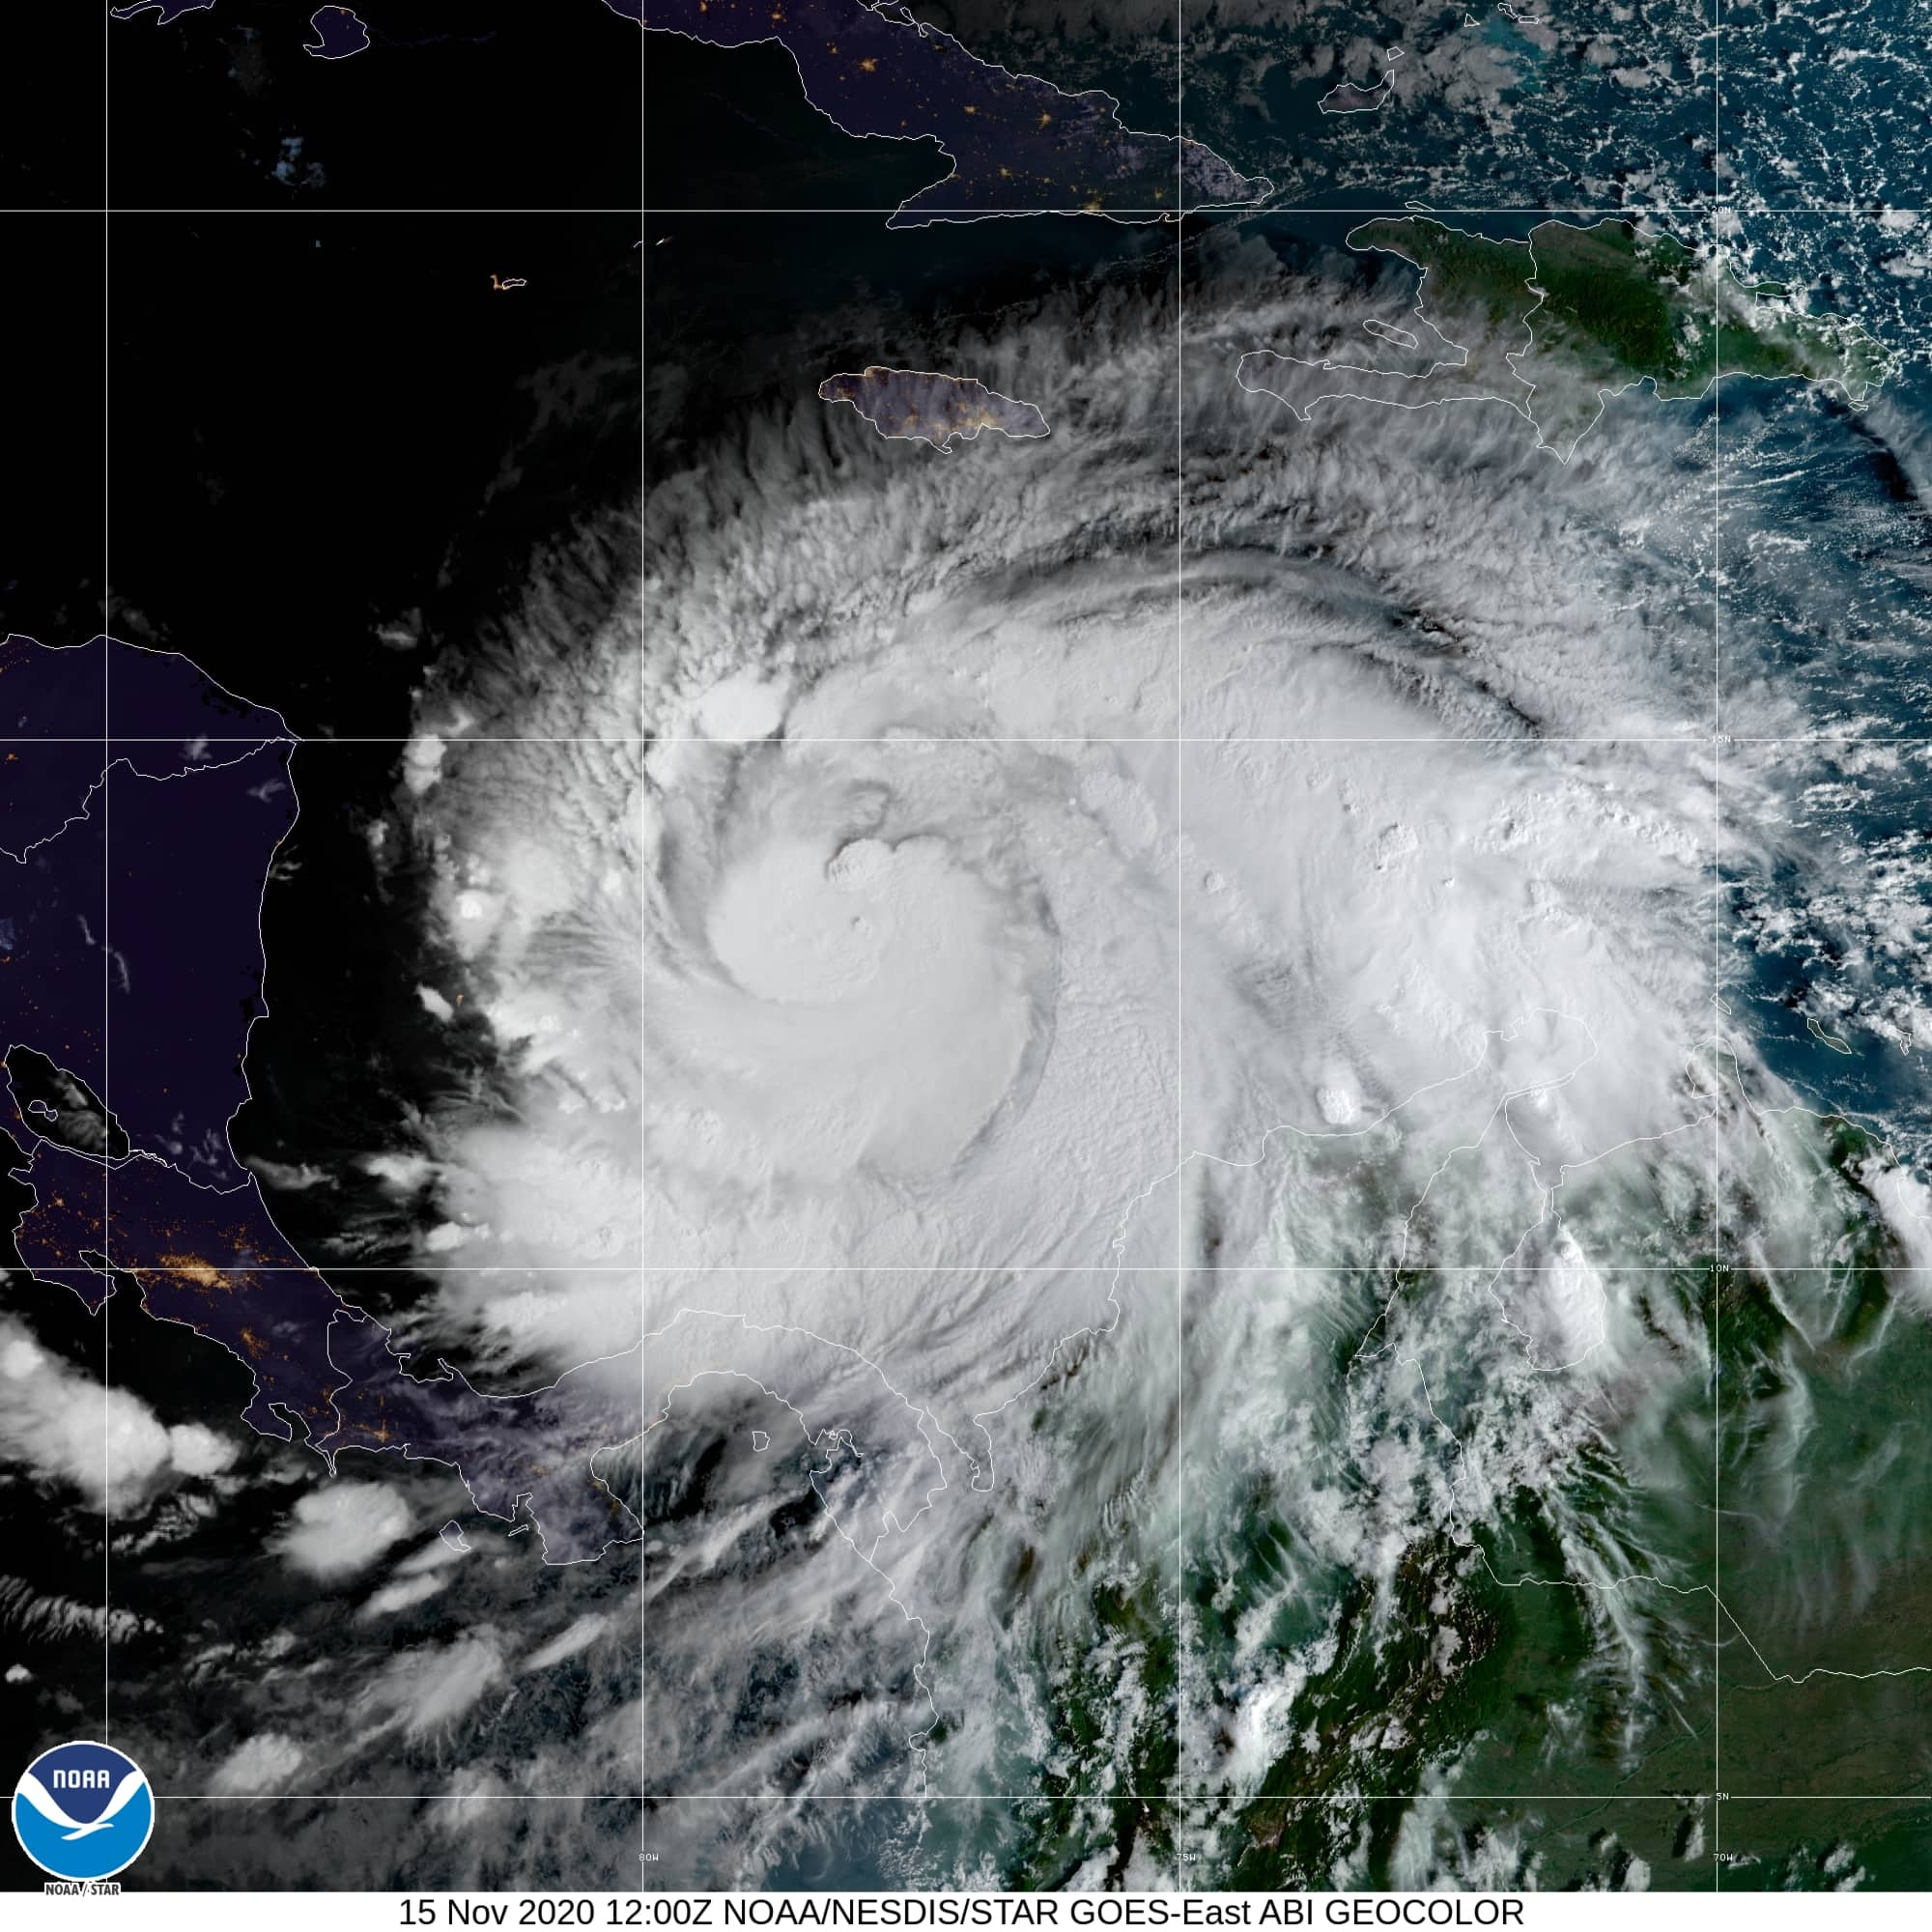 Satellite image of Hurricane Iota taken on November 15, 2020.